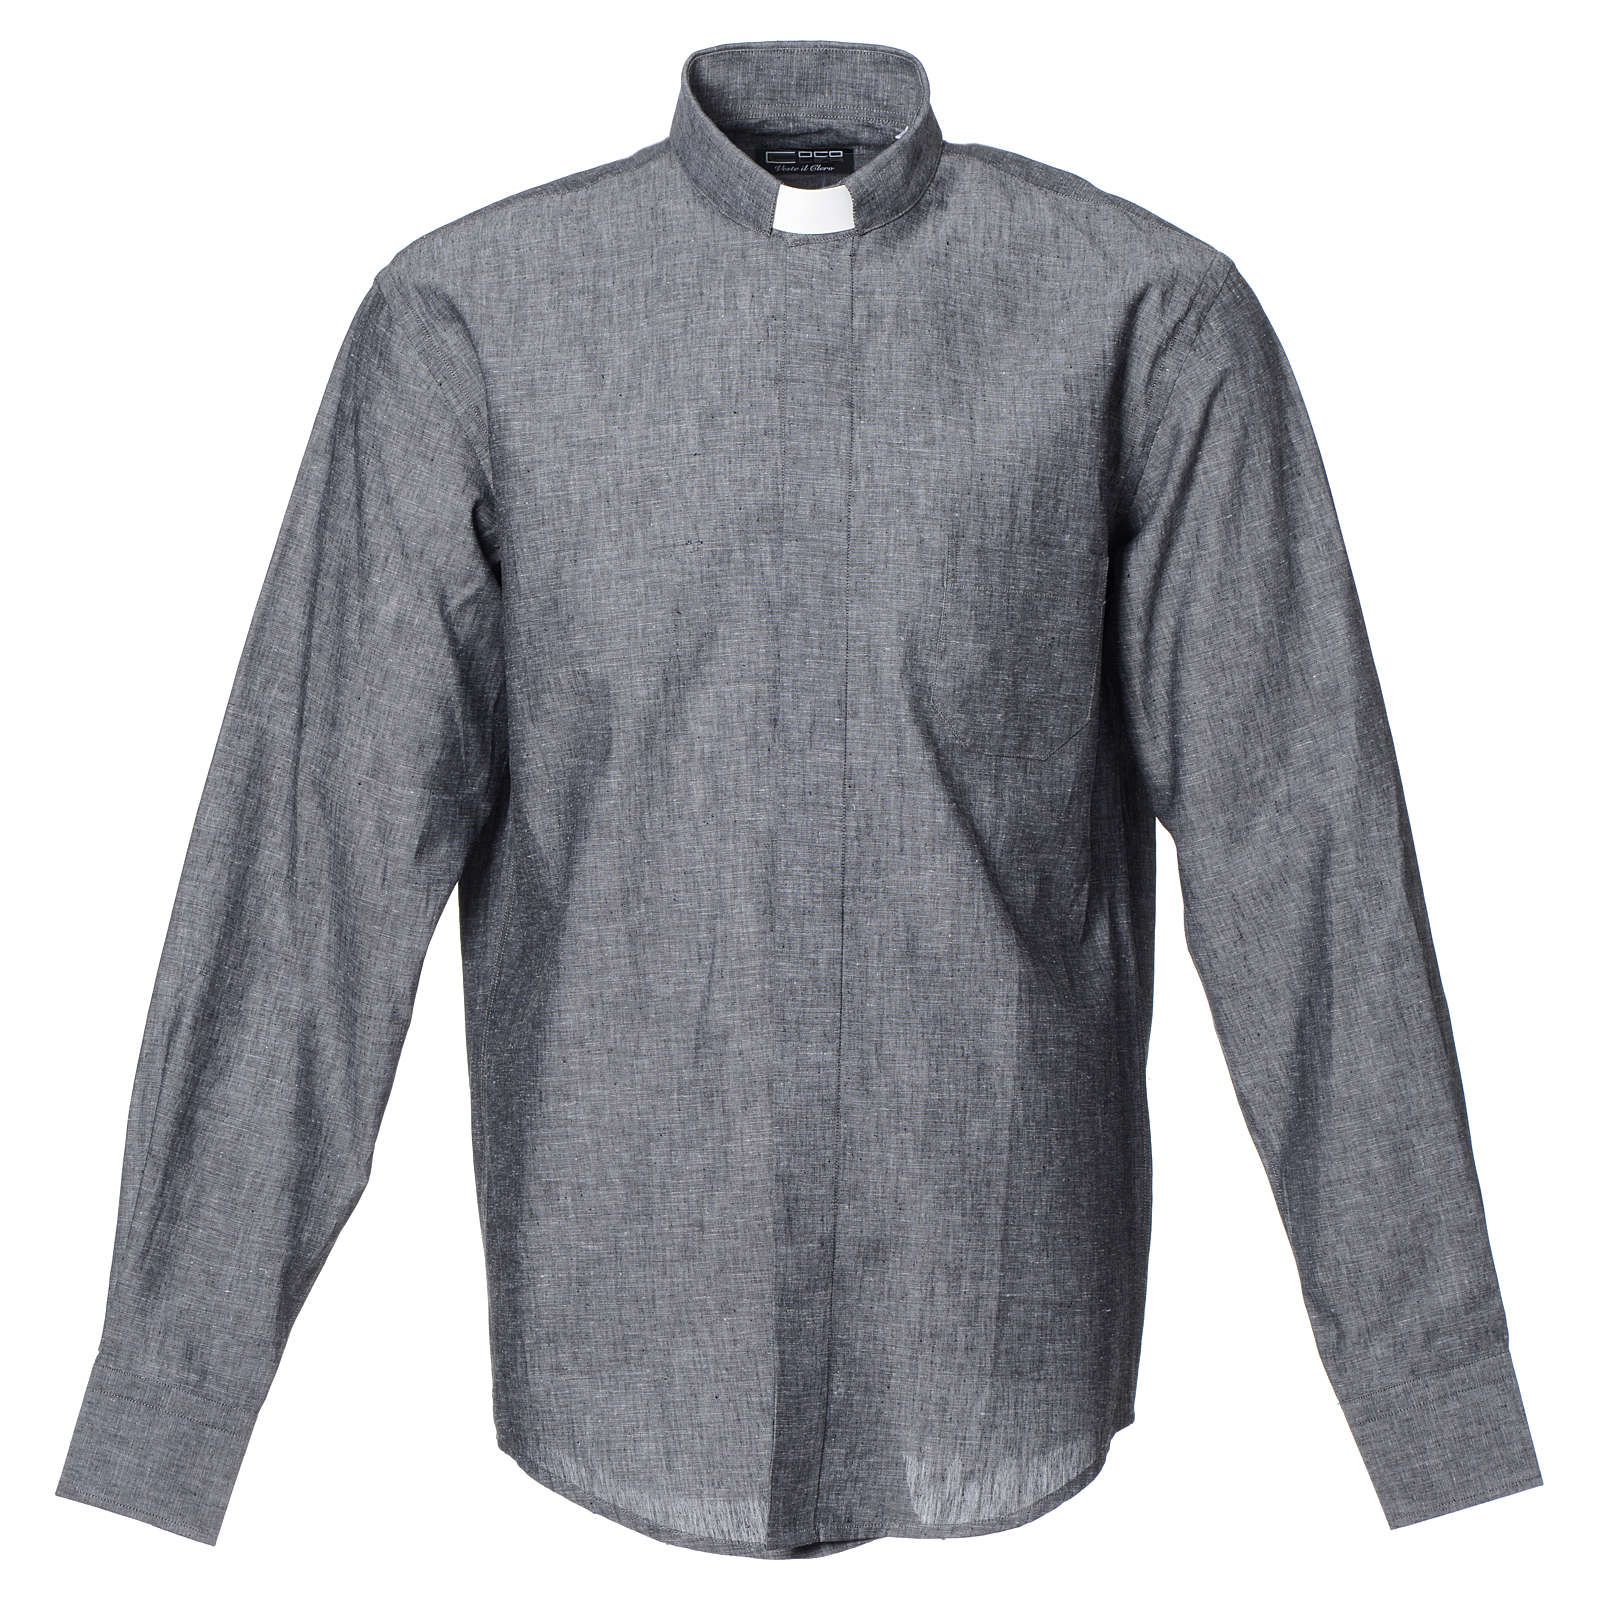 Clergy shirt with long sleeves in grey linen and cotton 4